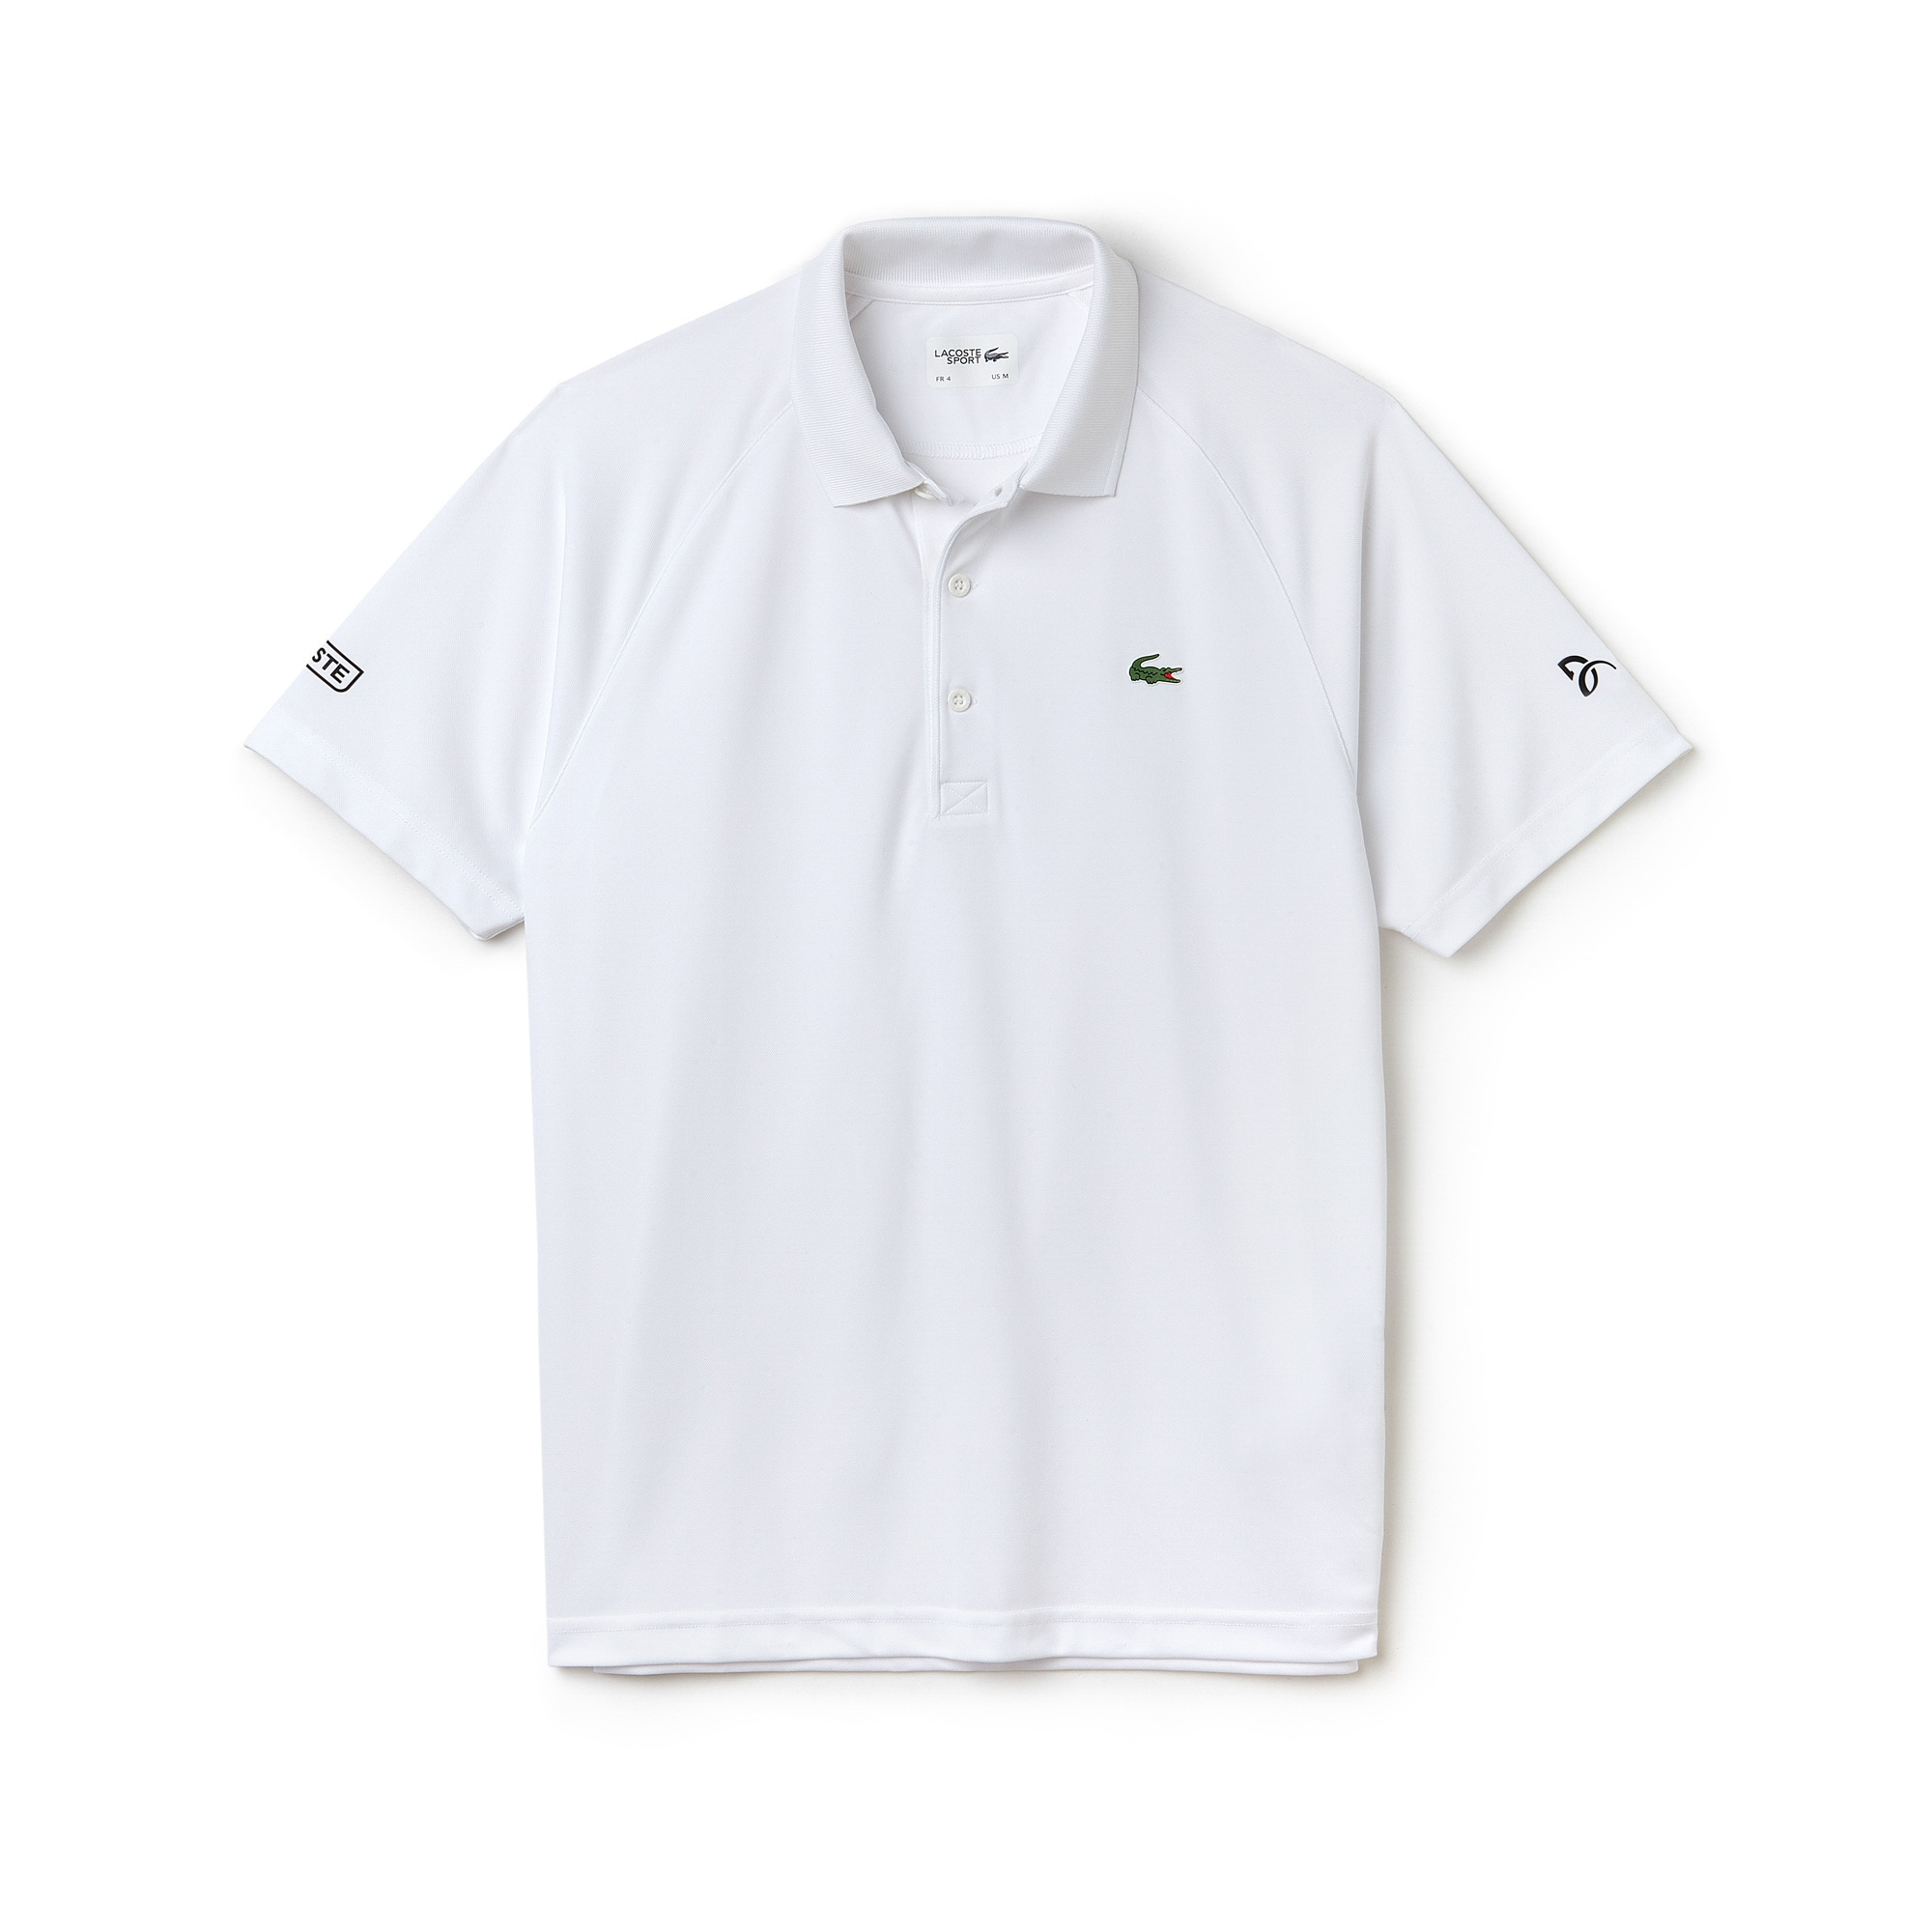 Polo Lacoste Collezione per Novak Djokovic -  Exclusive Green Edition